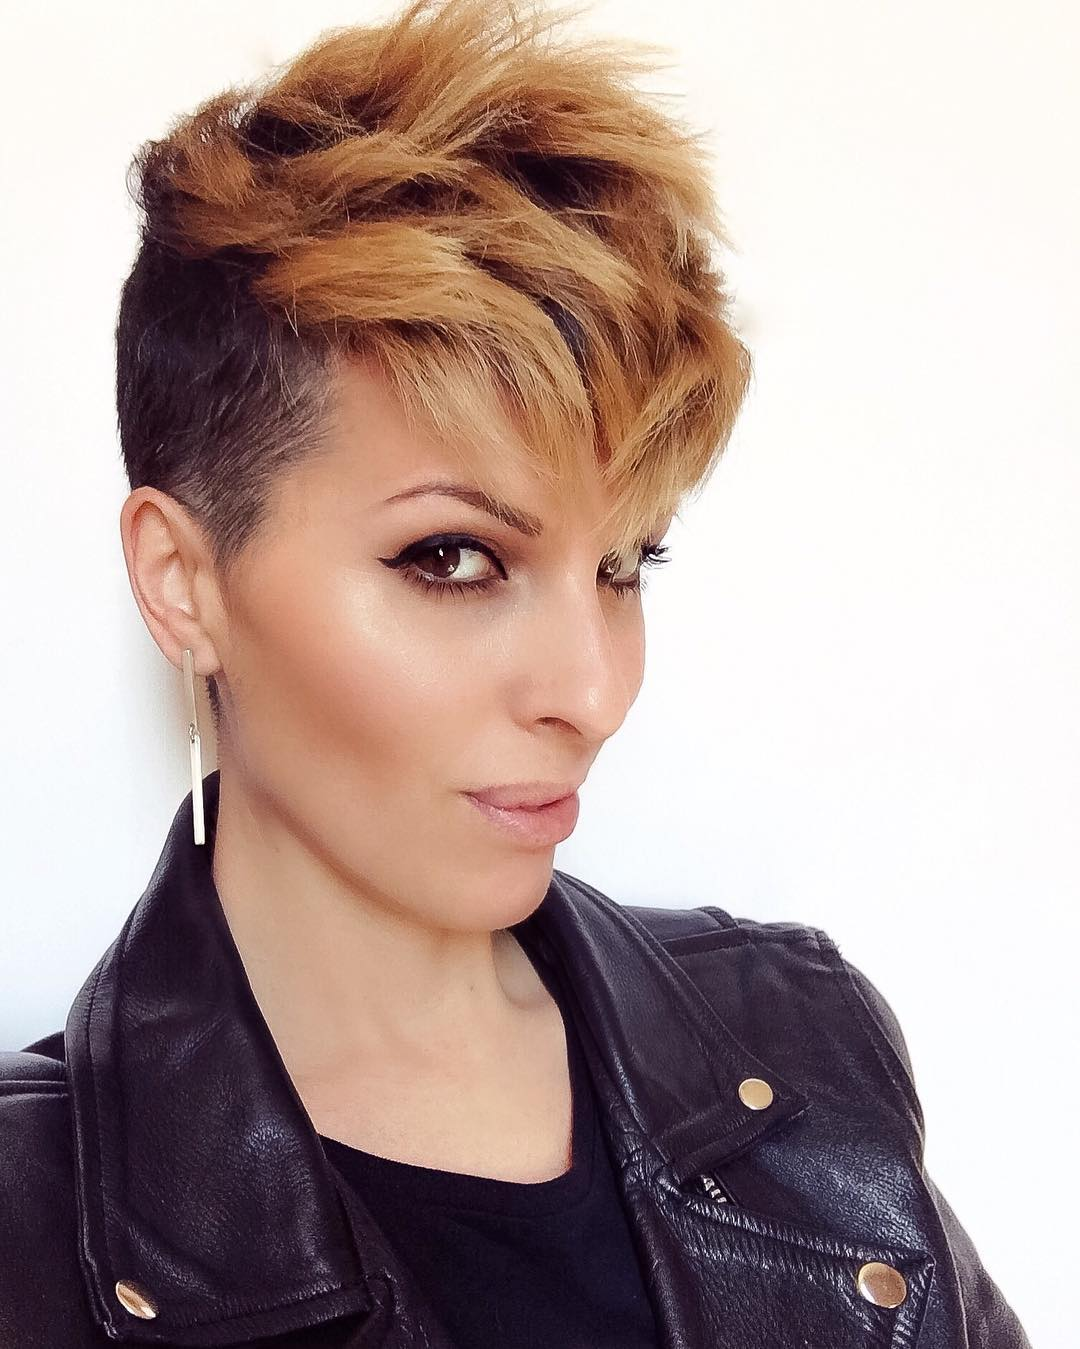 Amazing Short Hairstyle for Girls